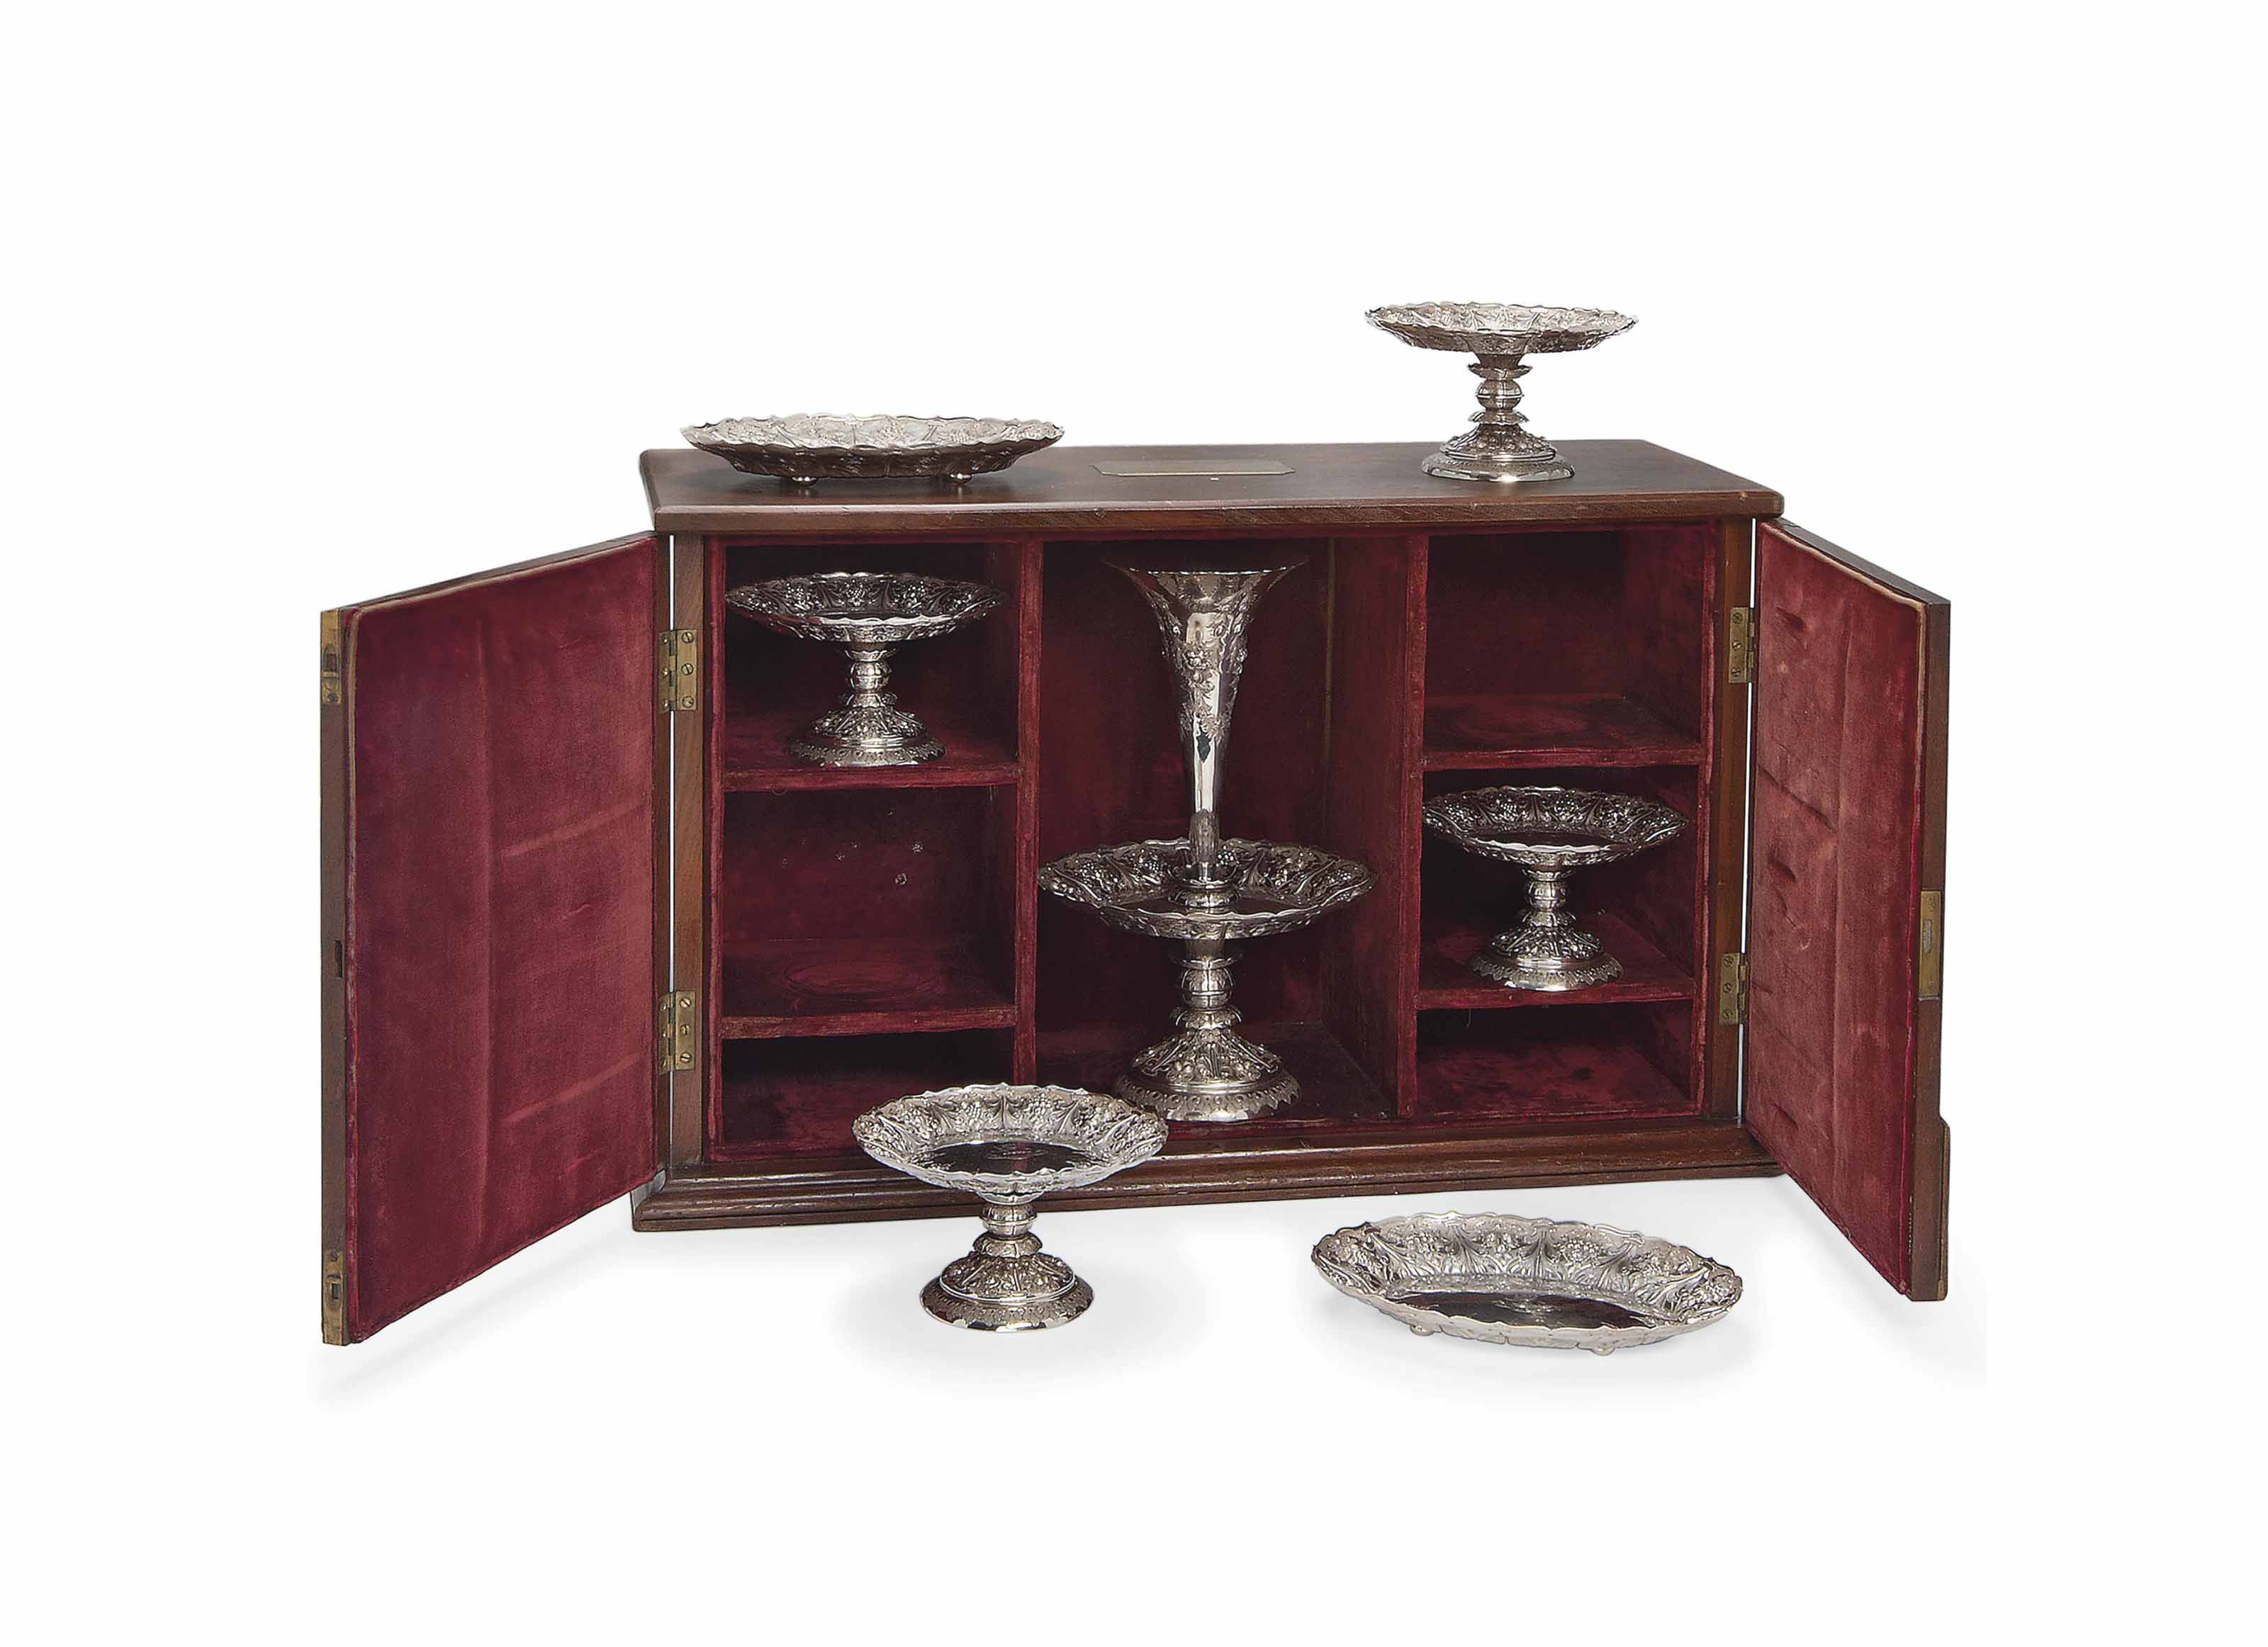 A VICTORIAN SEVEN-PIECE SILVER TABLE GARNITURE